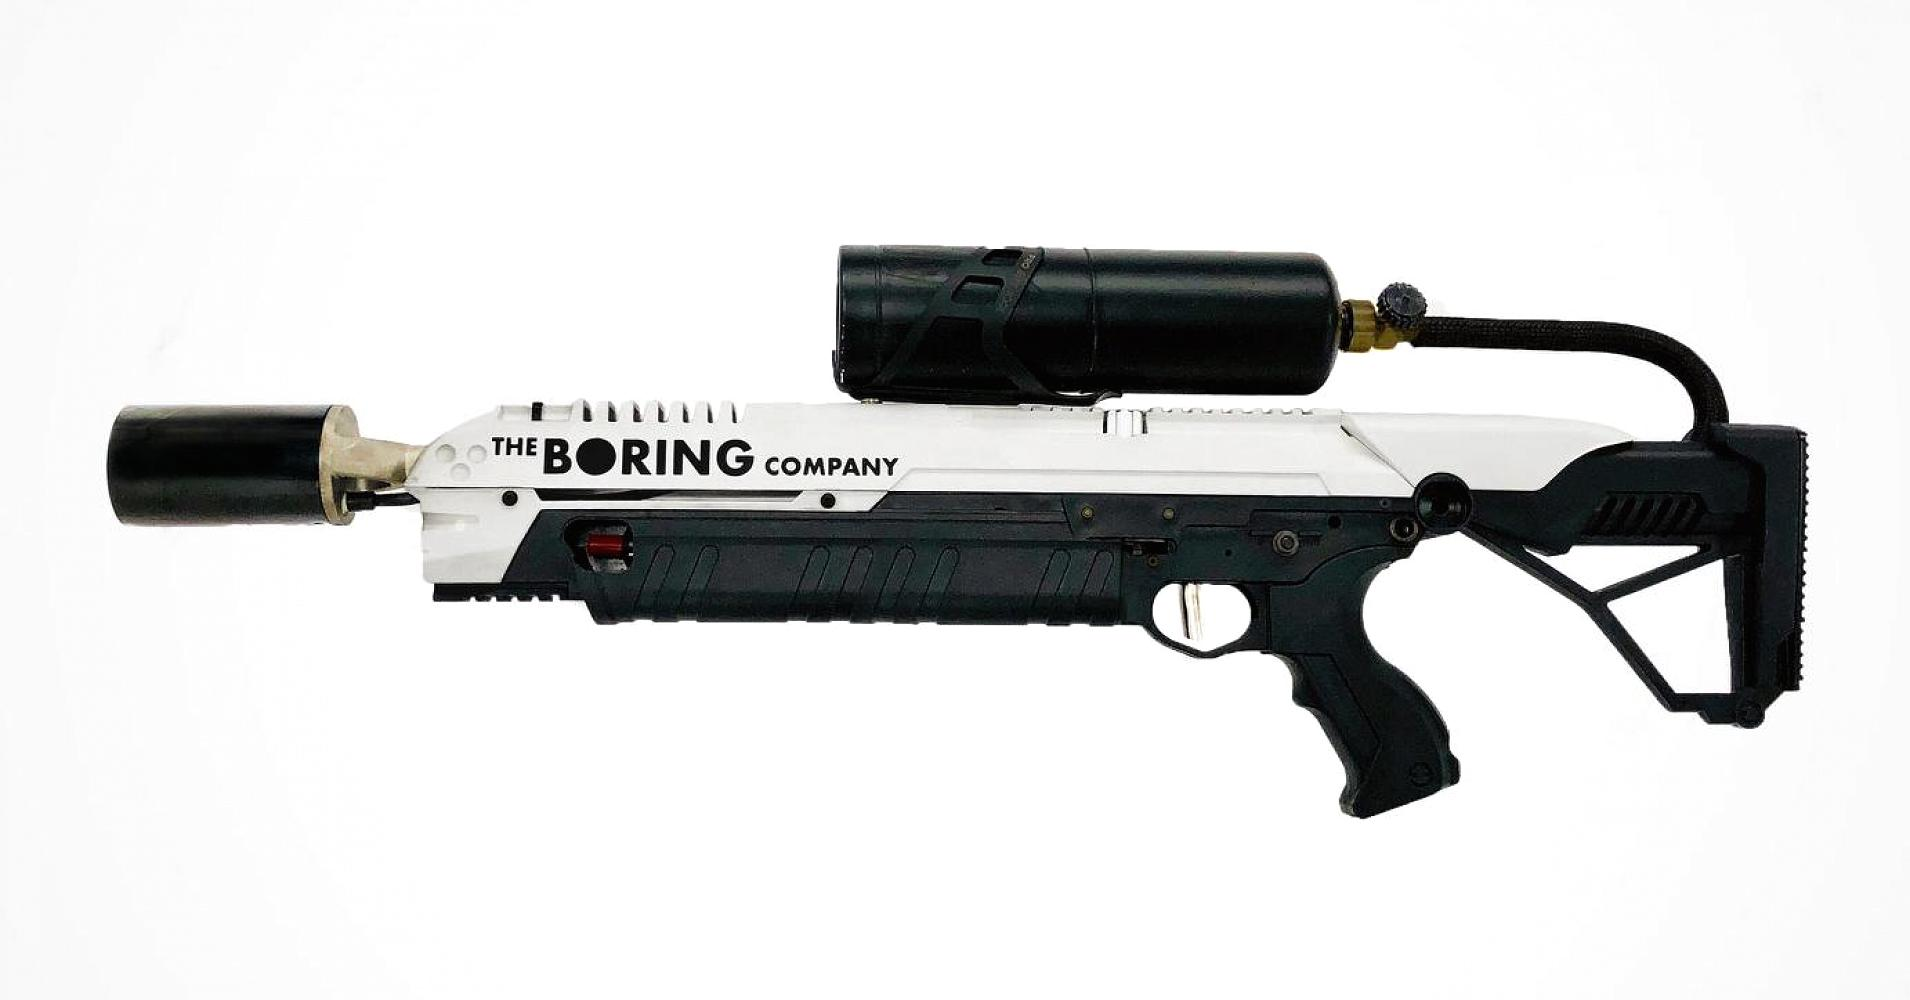 Огнемёт <i>The Boring Company</i>.